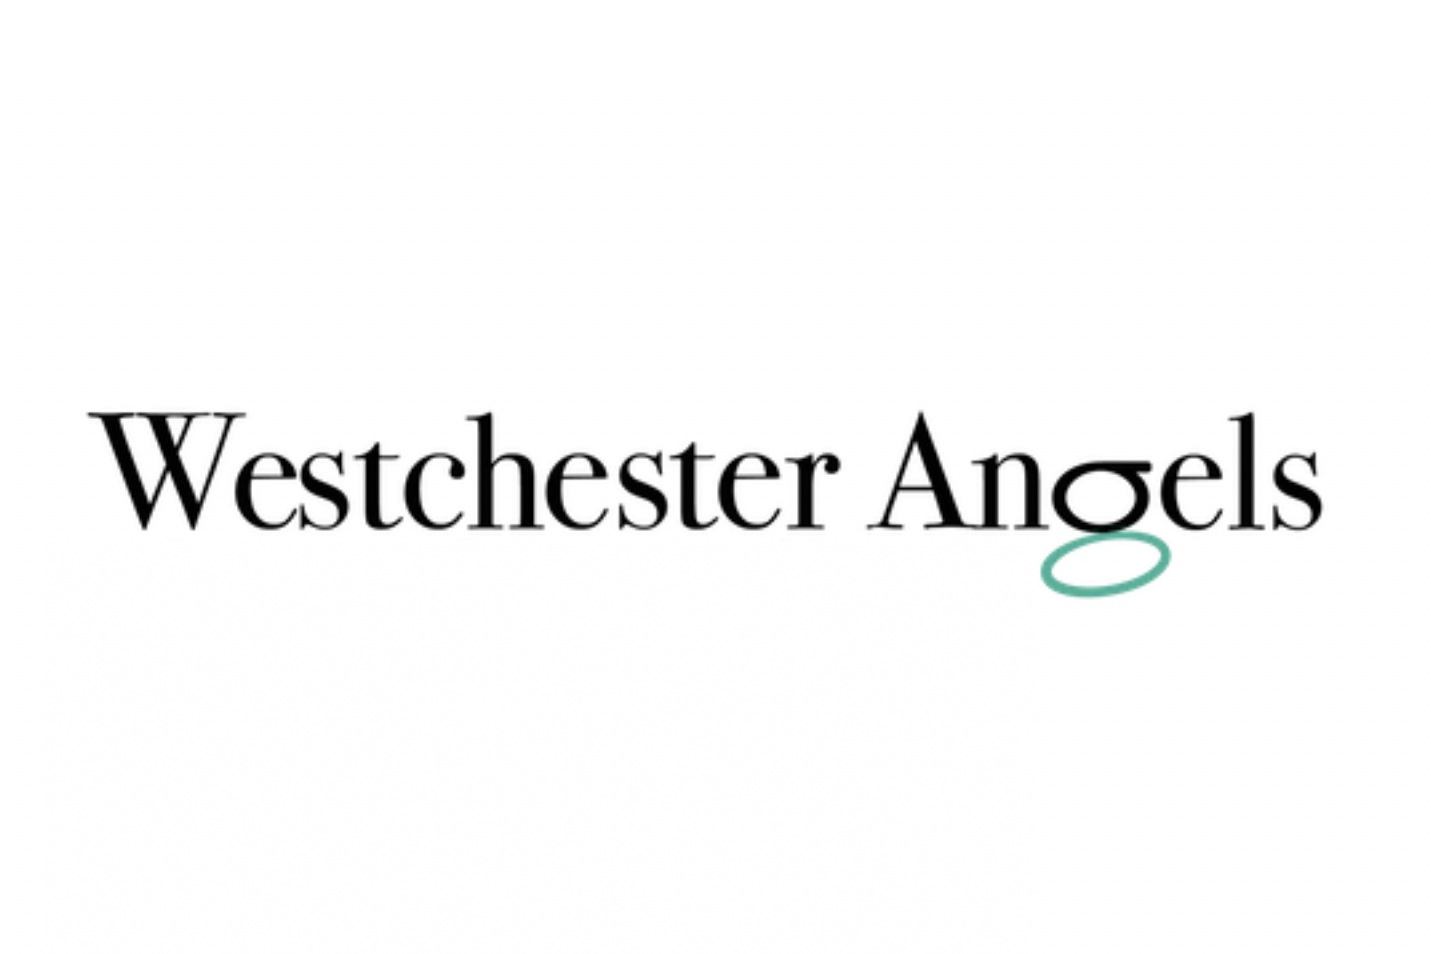 Westchester Angels